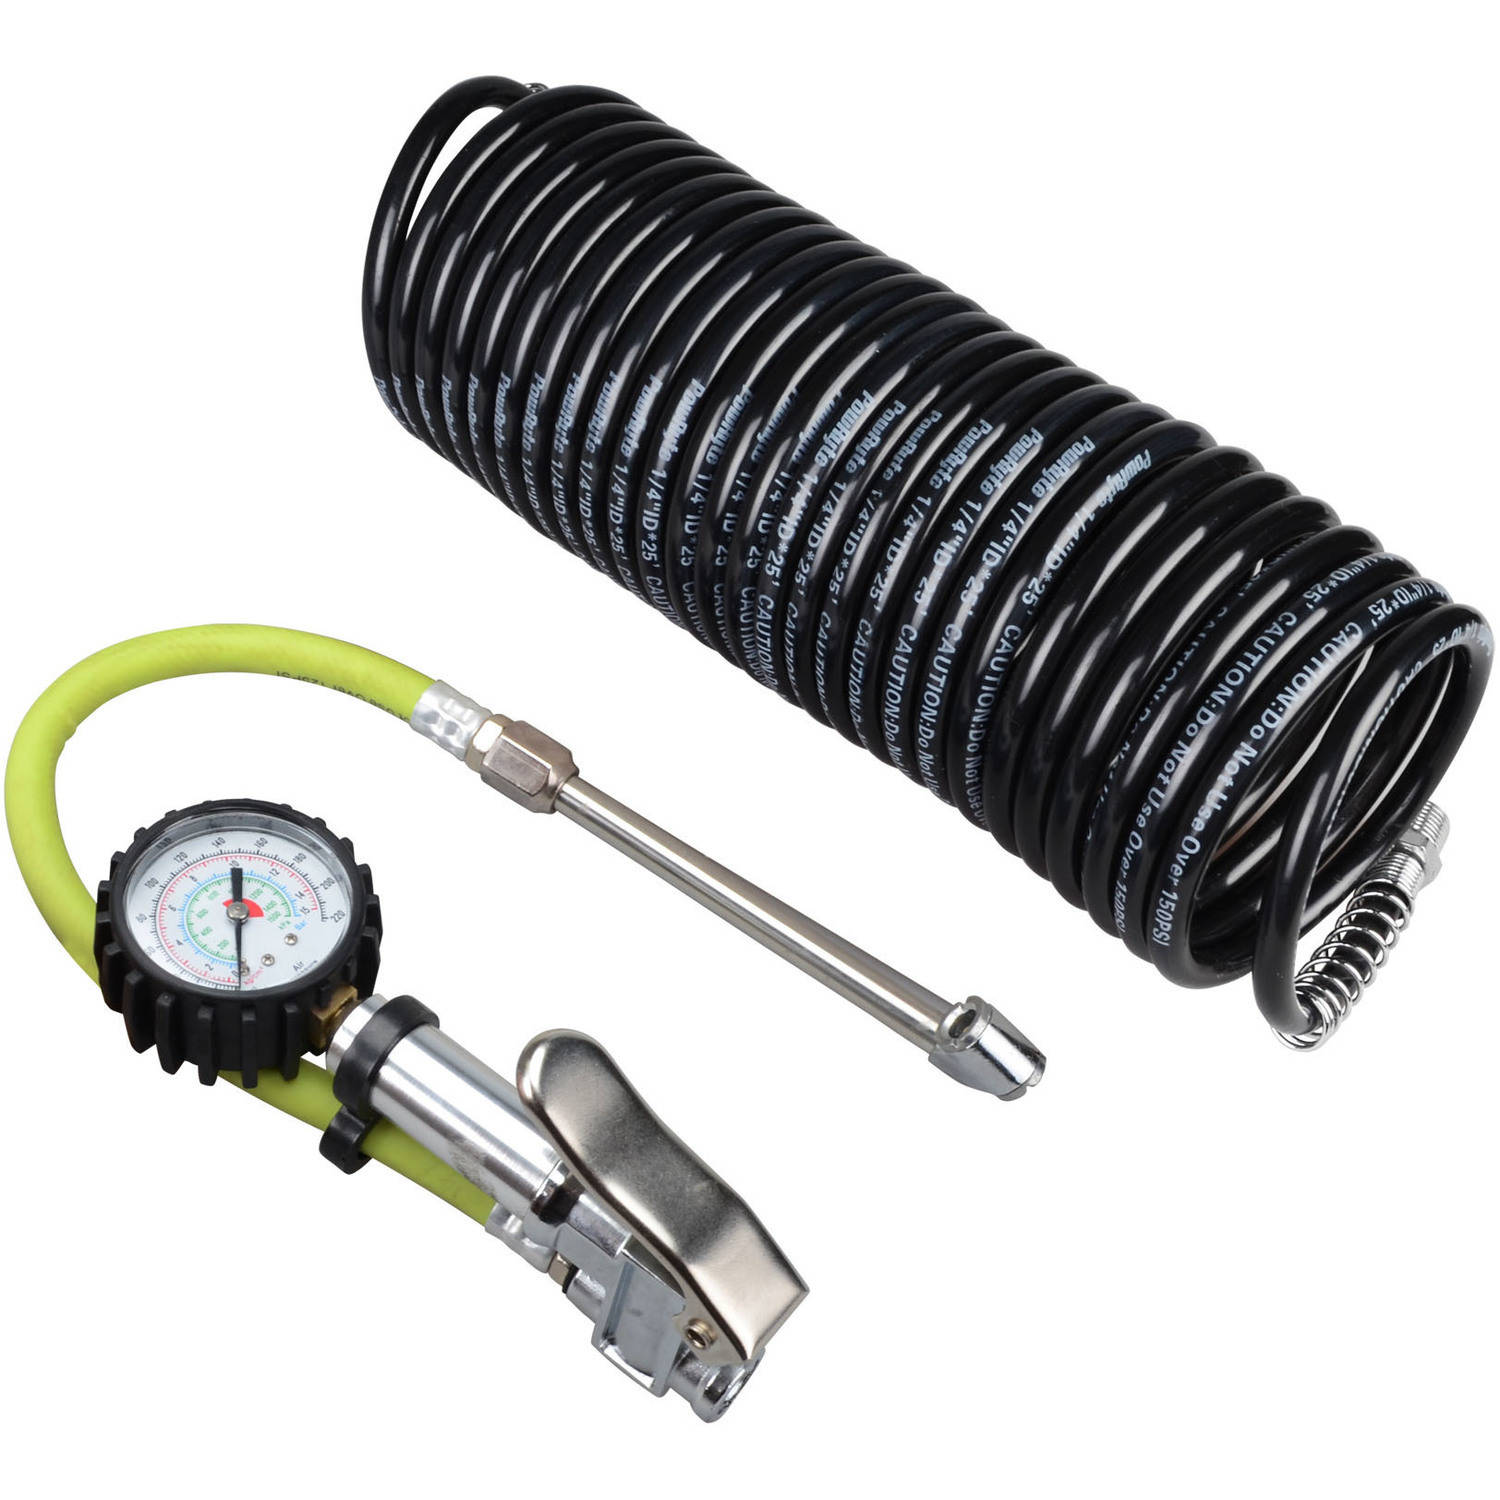 PowRyte Dual Chuck Air Tire Inflator with Dial Tire Gauge 10-220 PSI and Recoil Air Hose Kit 5001130